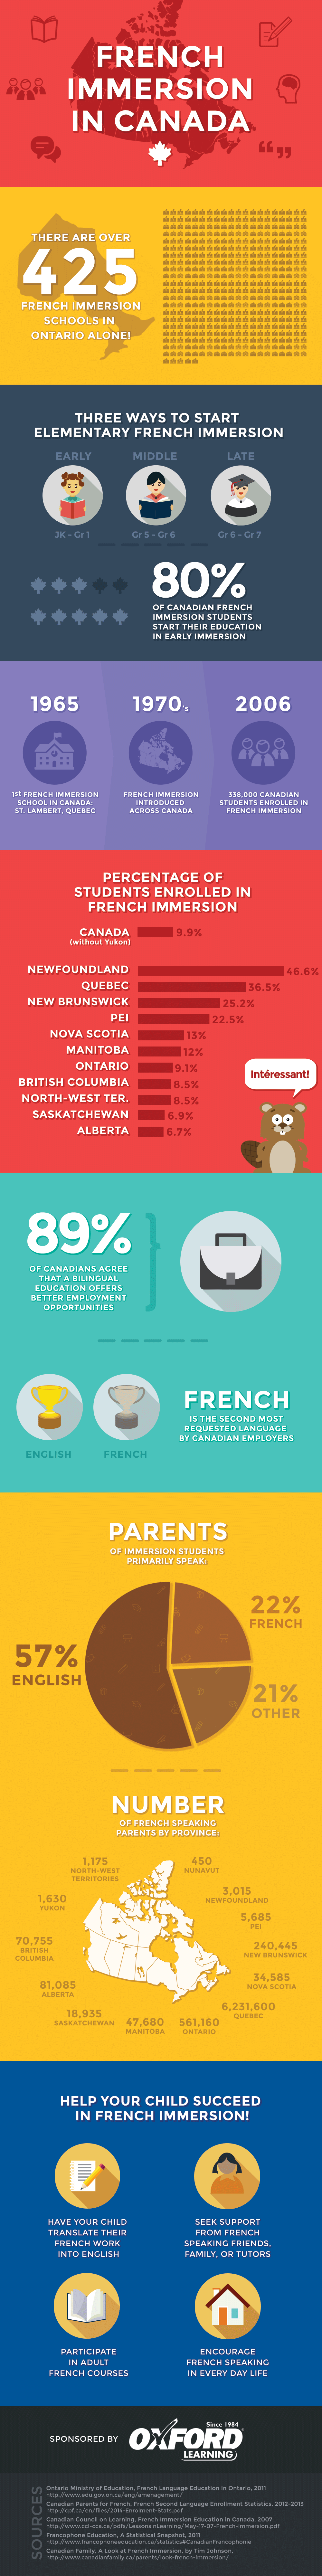 French Immersion in Canada